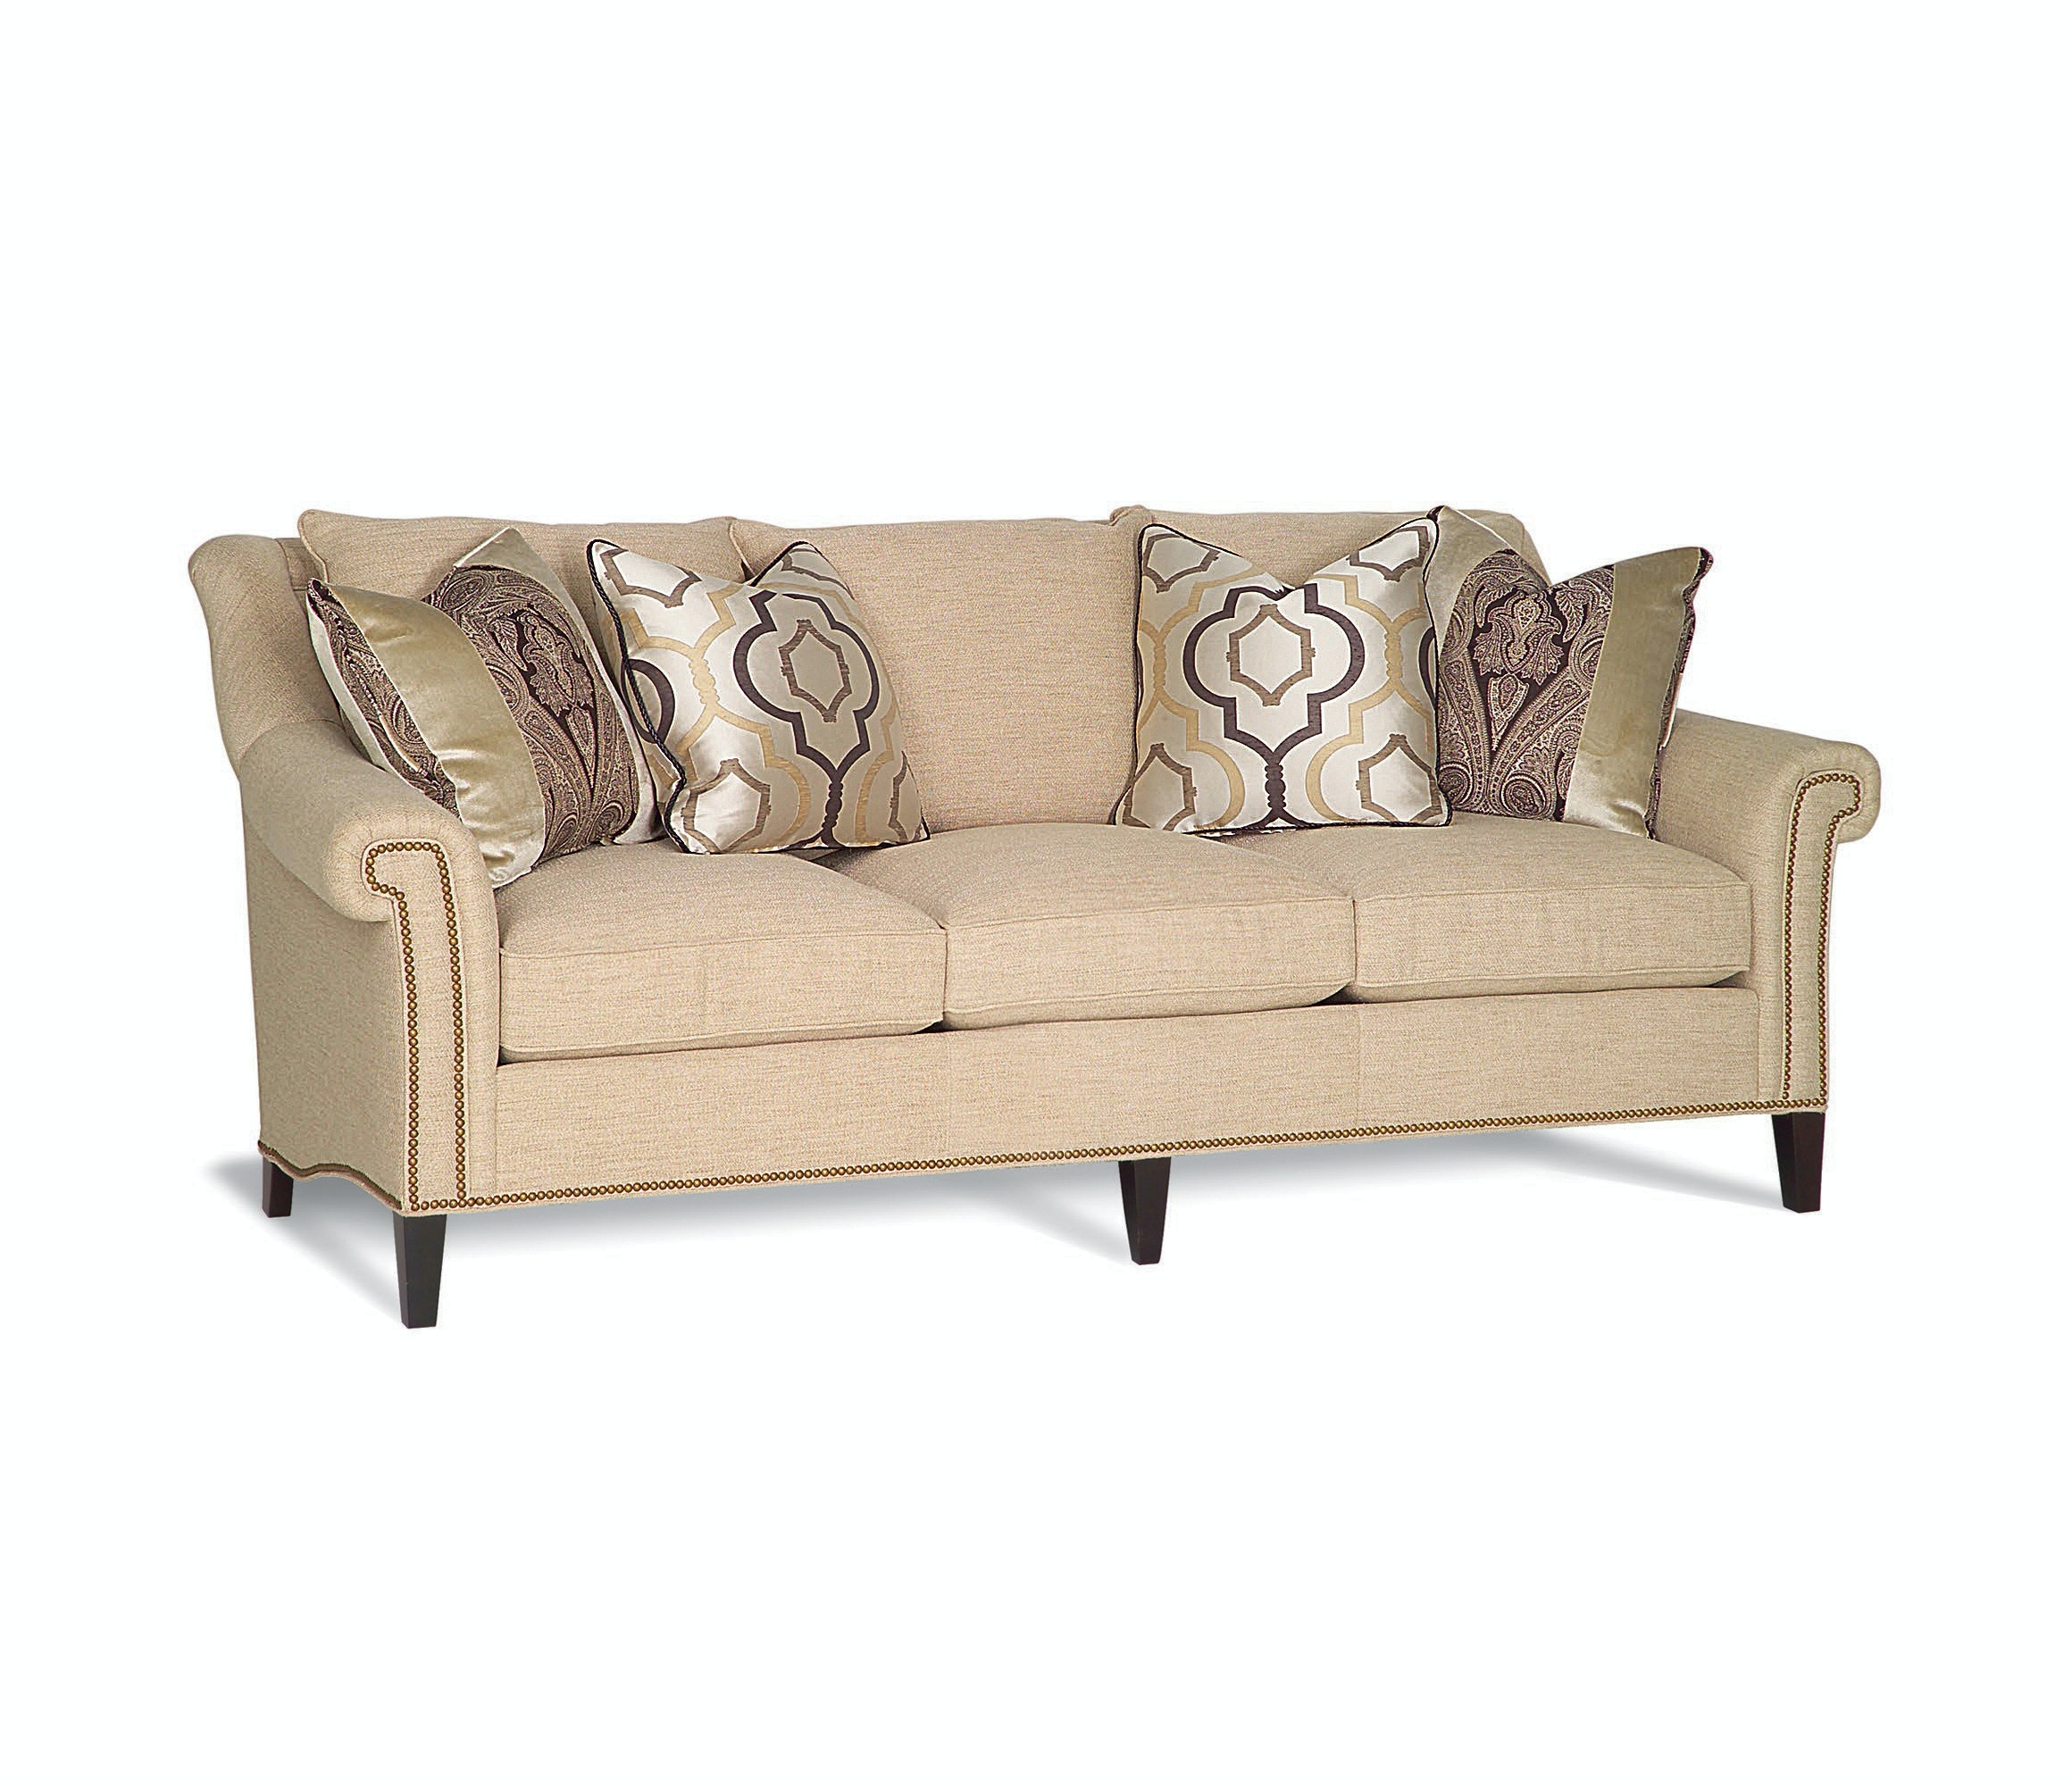 Taylor King Furniture Living Room Renshaw Sofa 2010 03